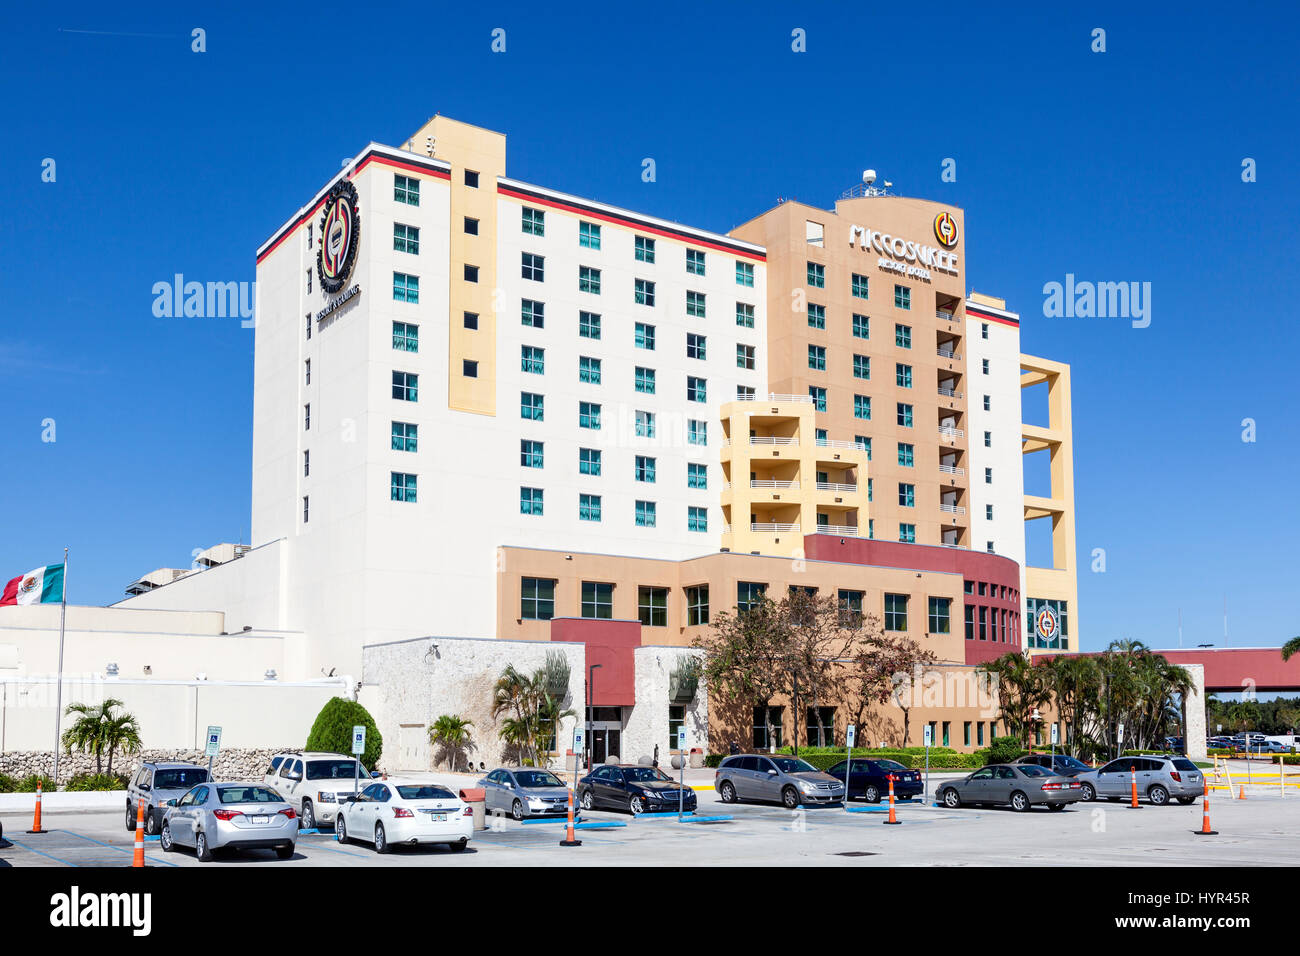 Miami, Fl, USA - March 15, 2017: Miccosukee Indian Casino and Resort Hotel located at the Tamiami Trail west of - Stock Image